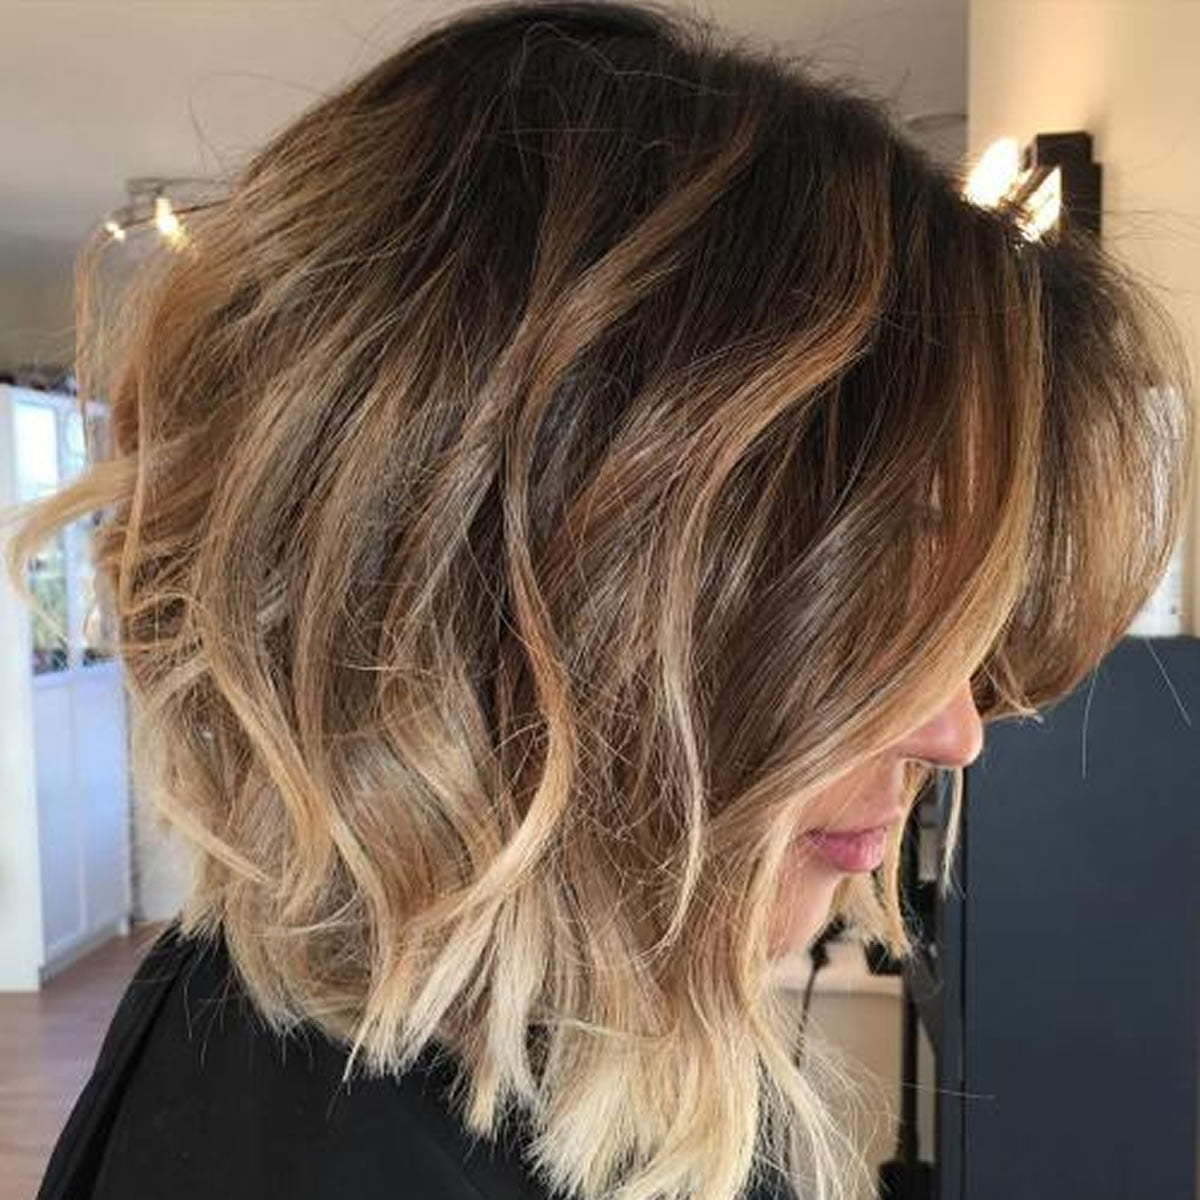 Long Bob Haircuts Ideas That Will Bring Beauty To Your Beauty